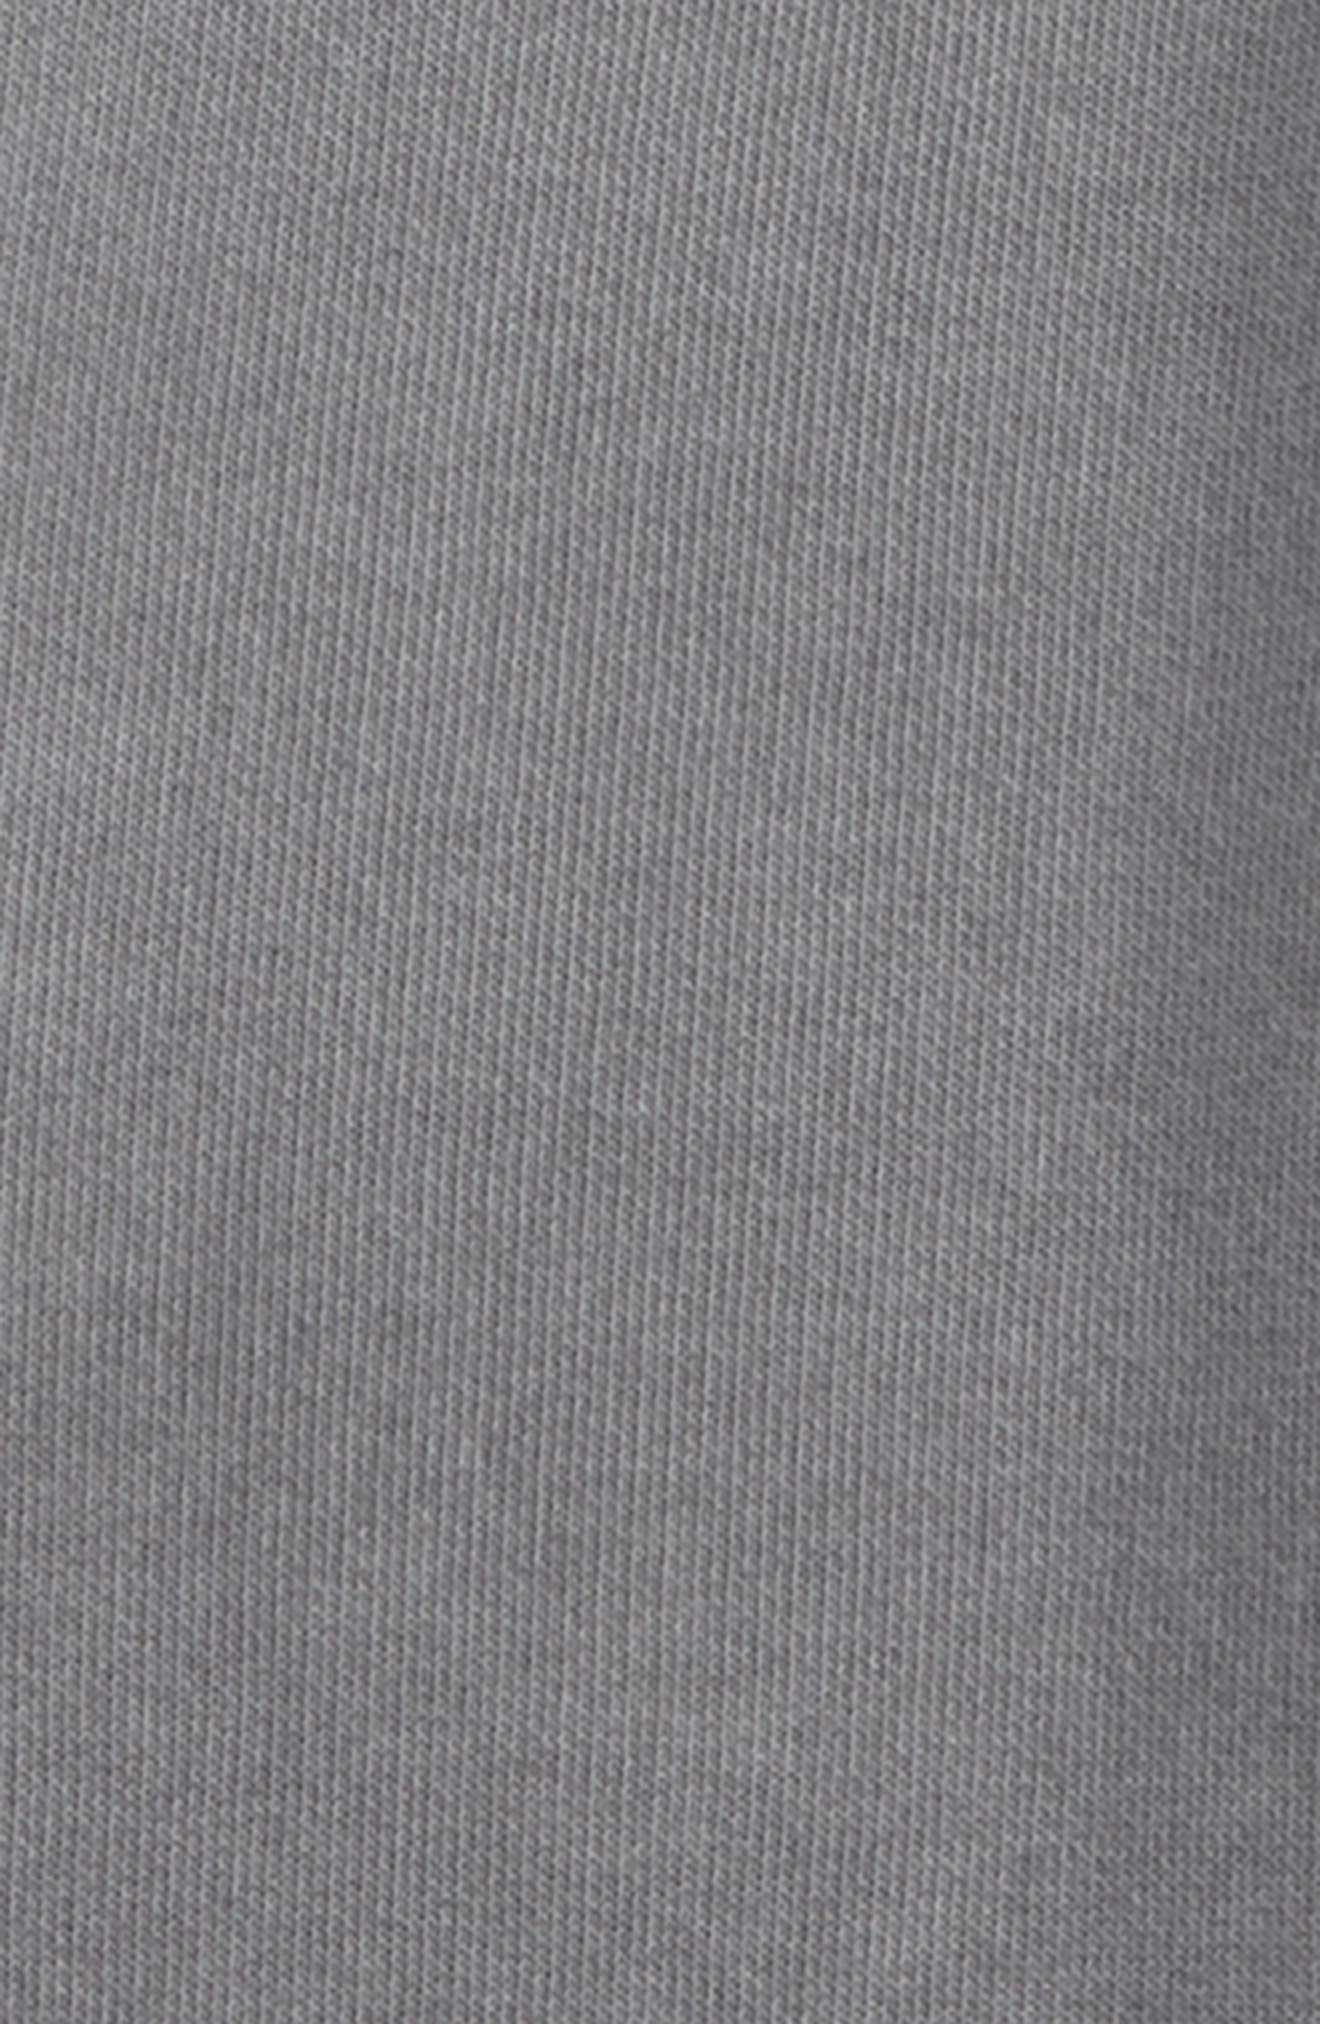 French Terry Pants,                             Alternate thumbnail 2, color,                             Dyed Grey